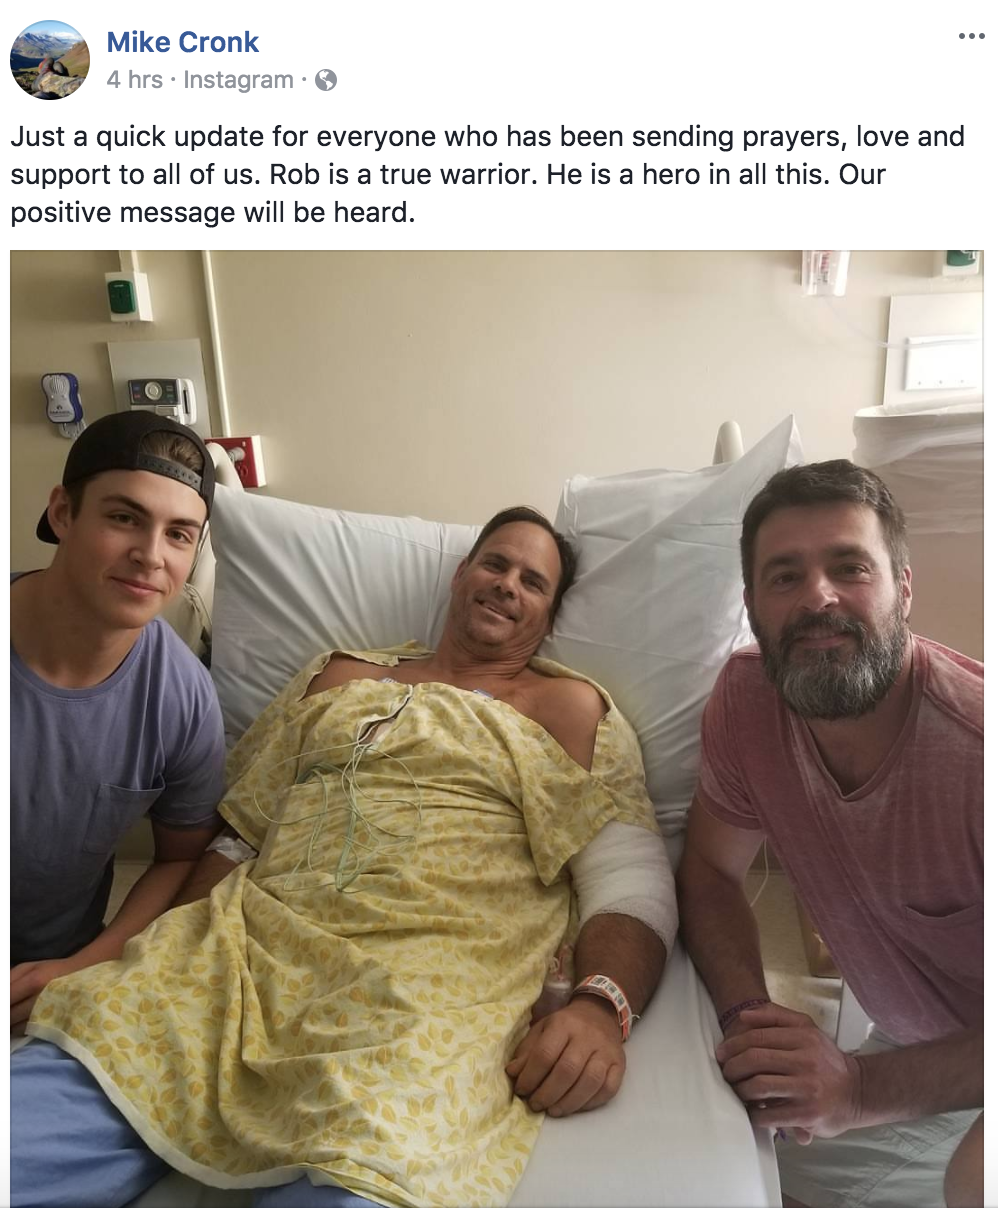 photo-of-mike-cronk-with-his-rob-at-the-hospital-i.png